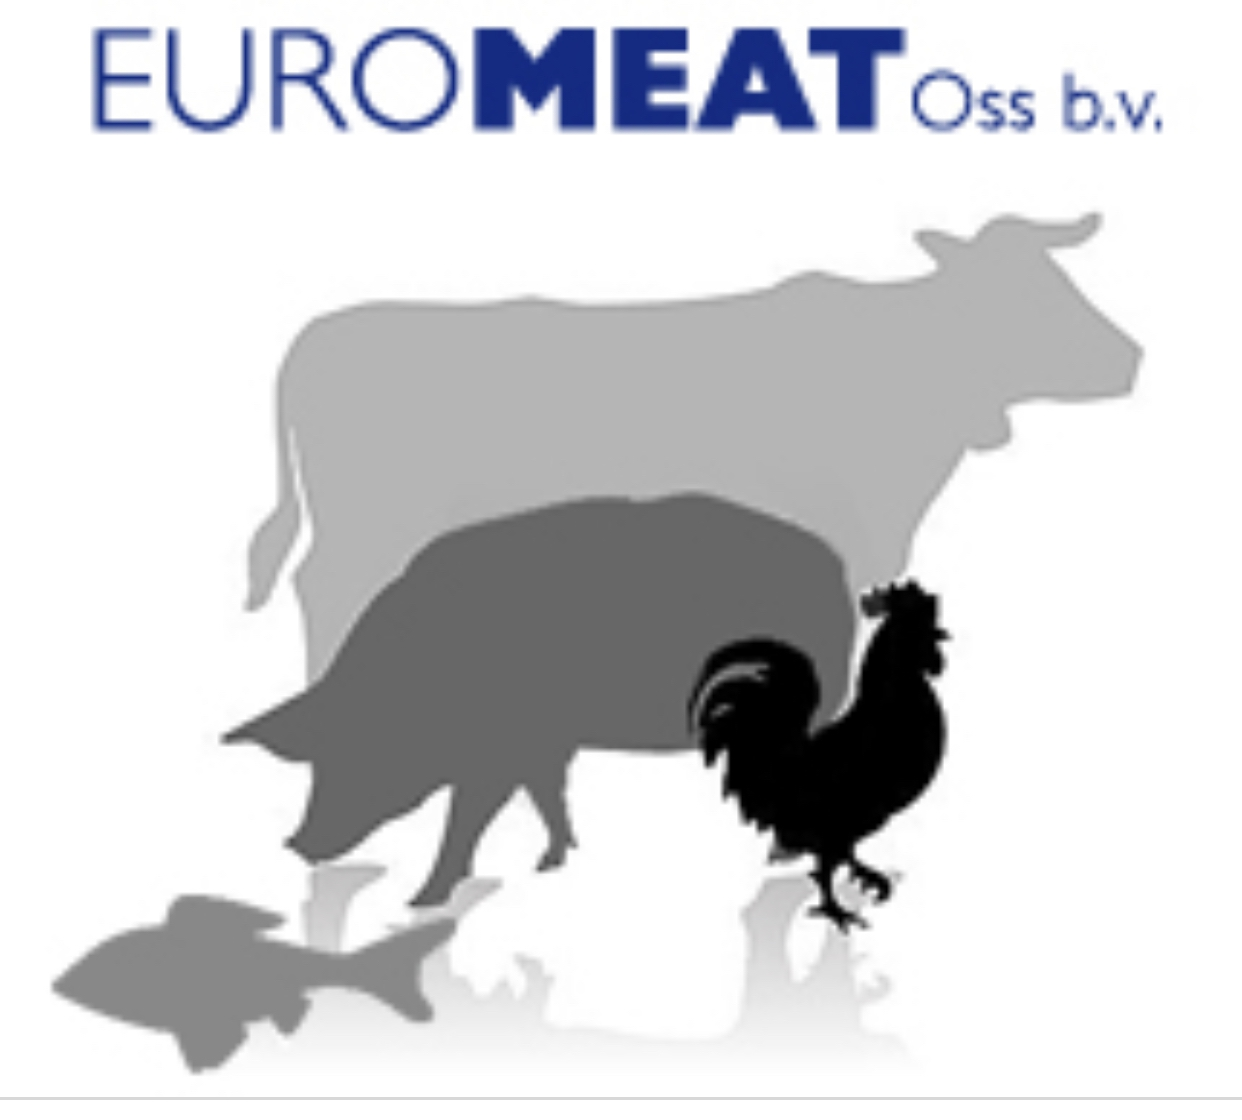 Euromeat